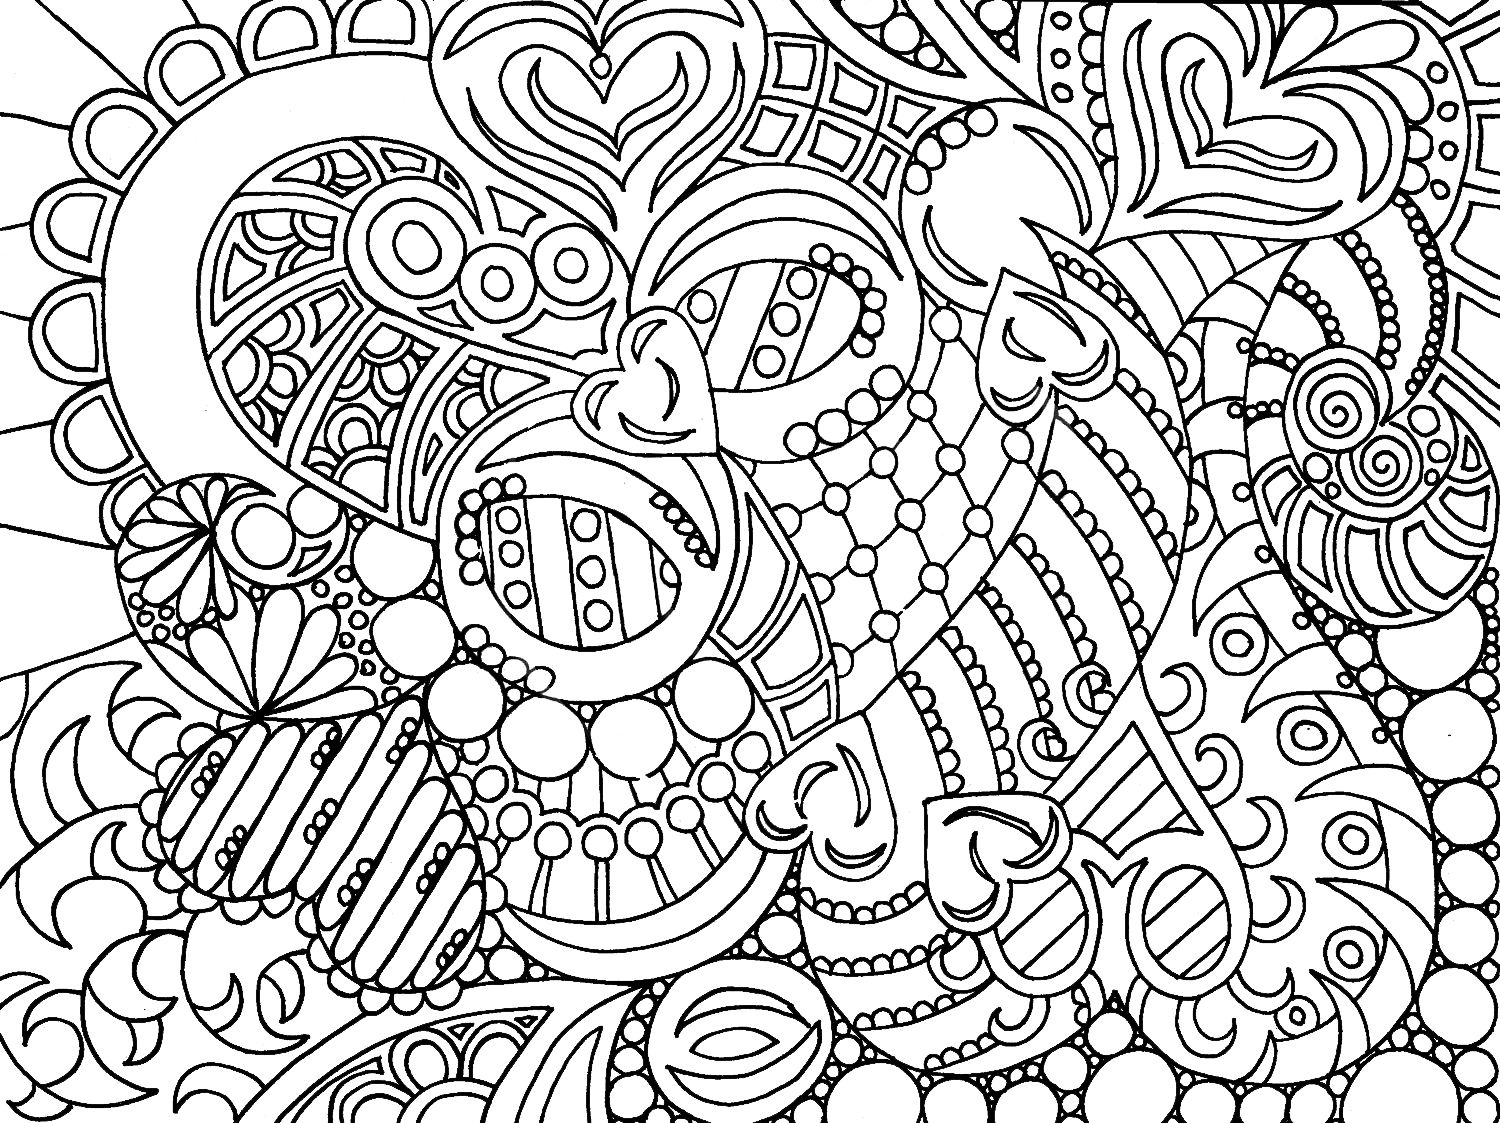 Printable coloring books adults - Advanced Coloring Pages Adults Coloring Pages Pictures Imagixs